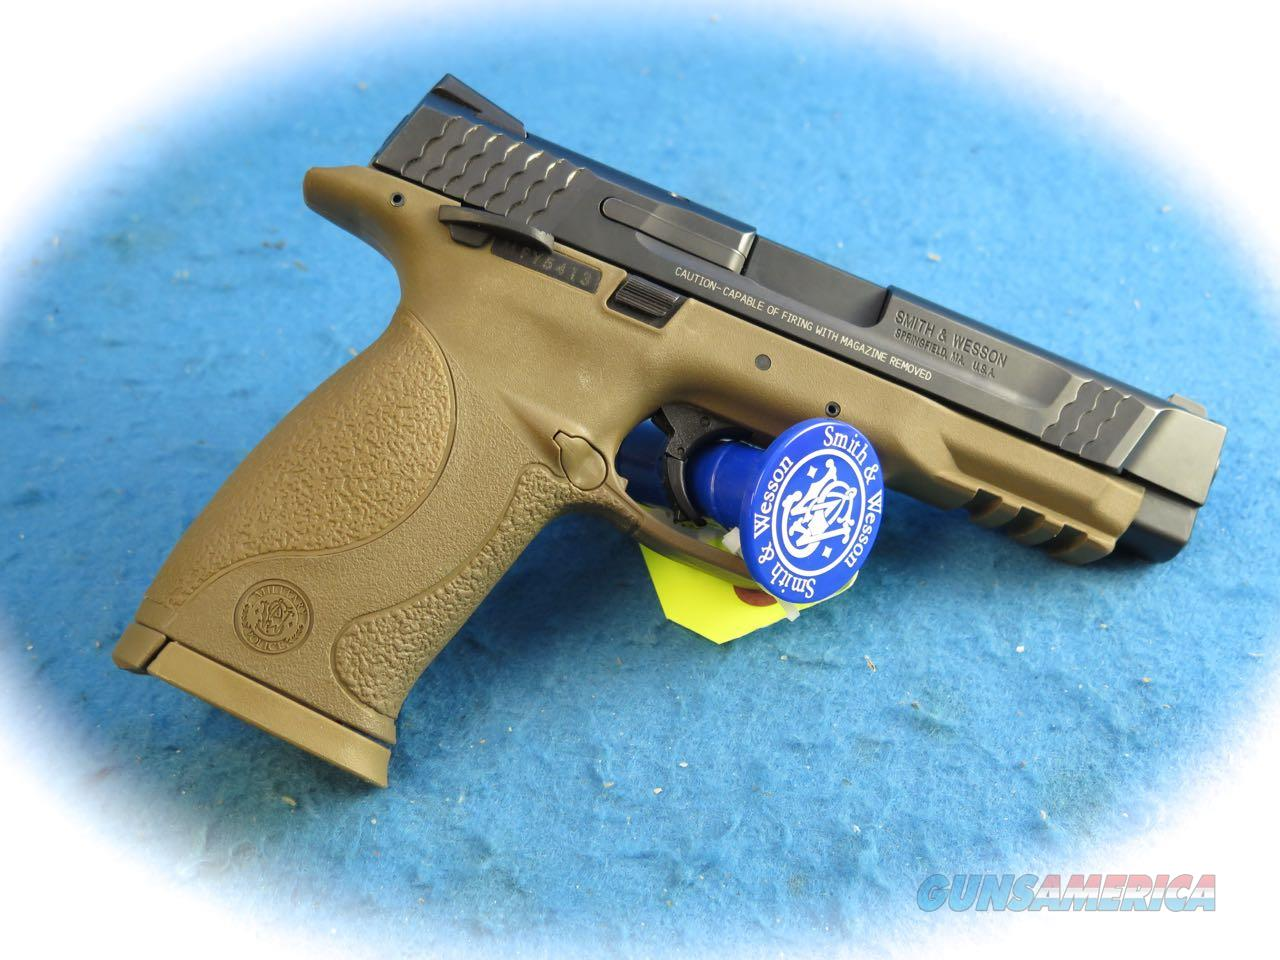 Smith & Wesson M&P45 .45 ACP Pistol **Used**  Guns > Pistols > Smith & Wesson Pistols - Autos > Polymer Frame